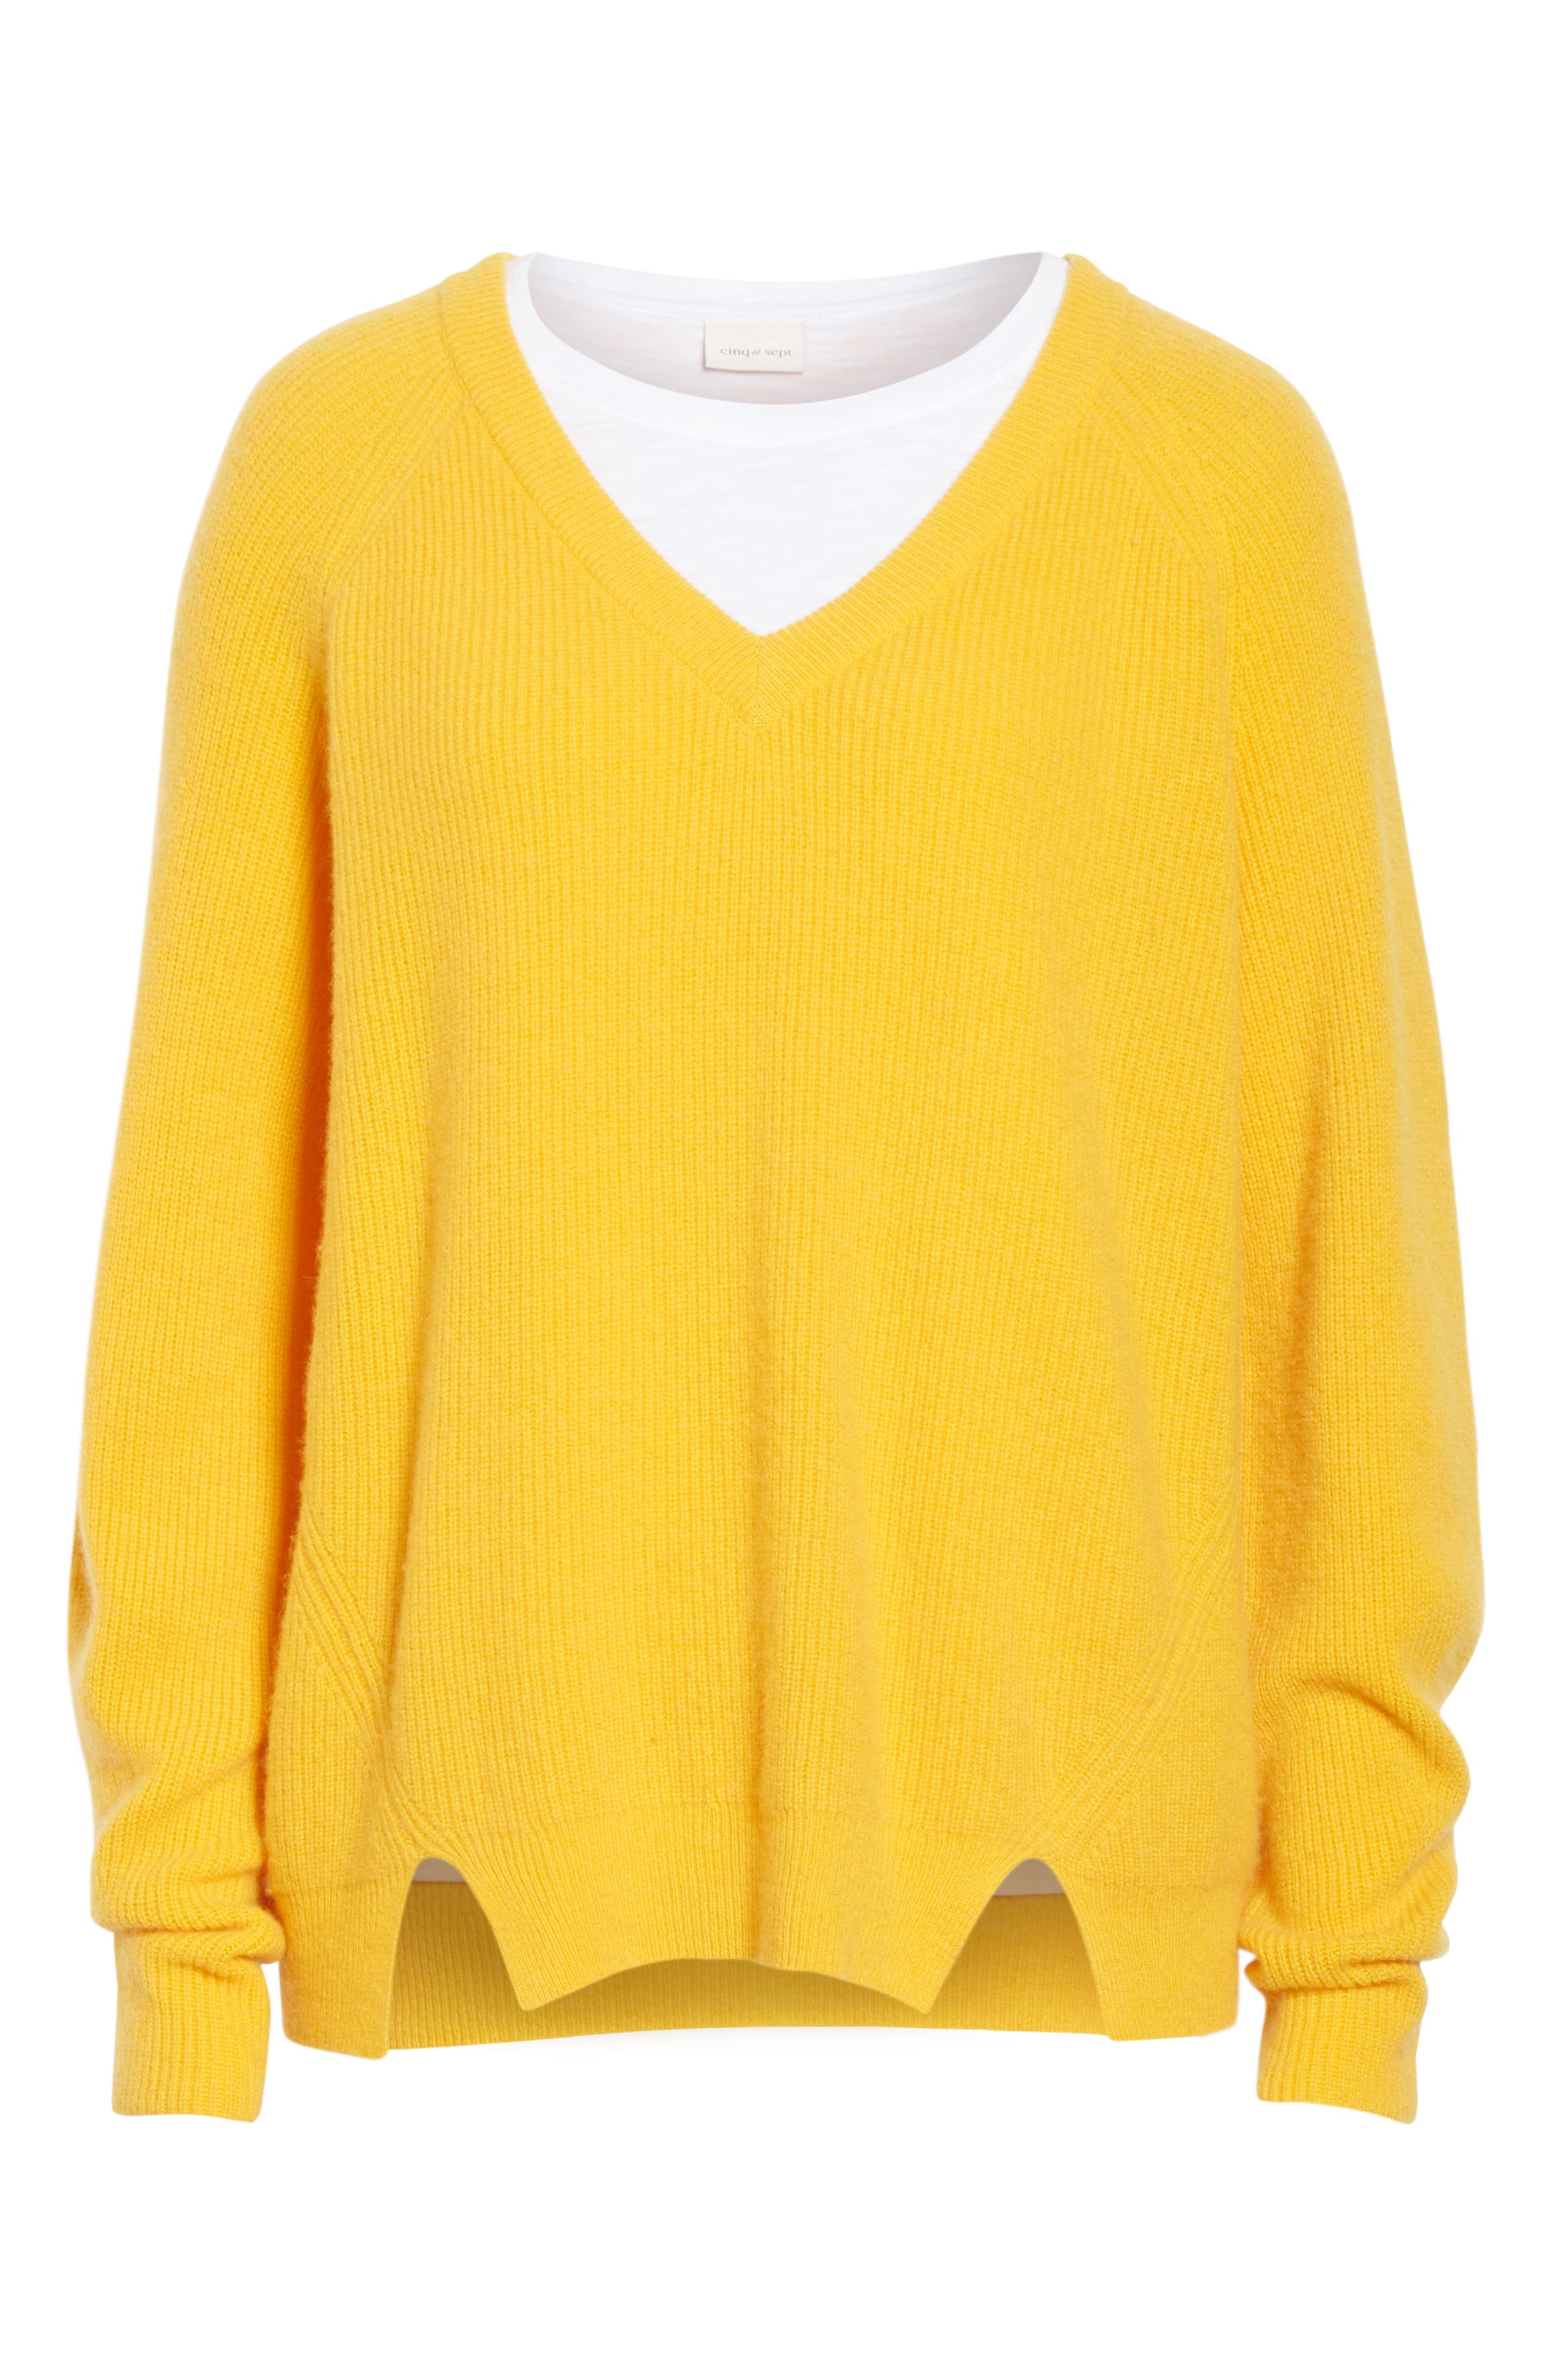 Neely Cashmere Sweater,                             Alternate thumbnail 6, color,                             724